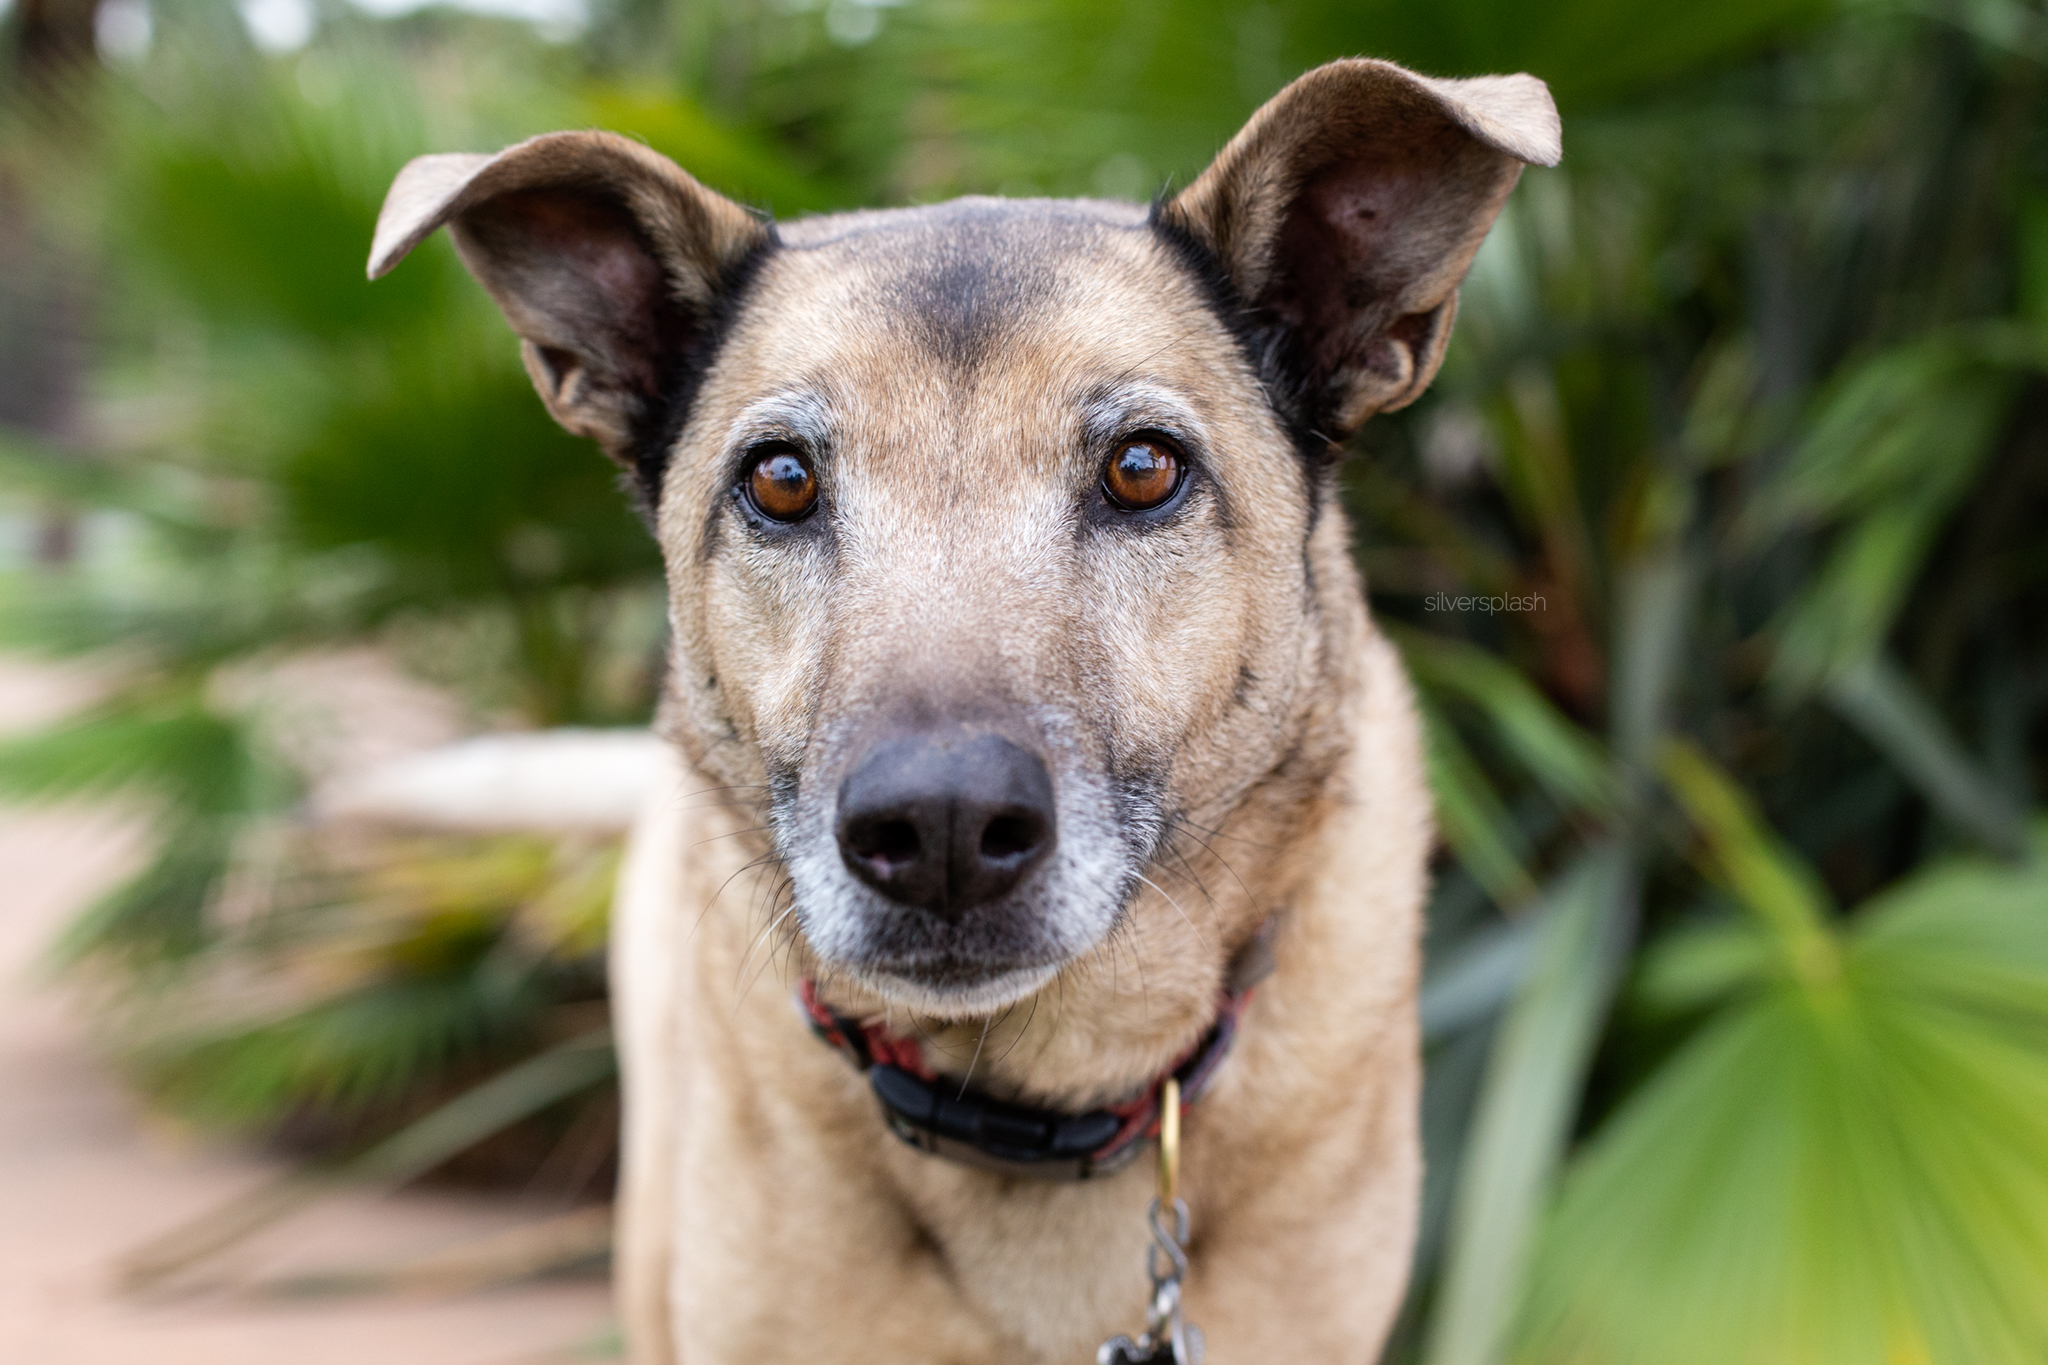 silver-splash-photo-shepherd-mix.jpg